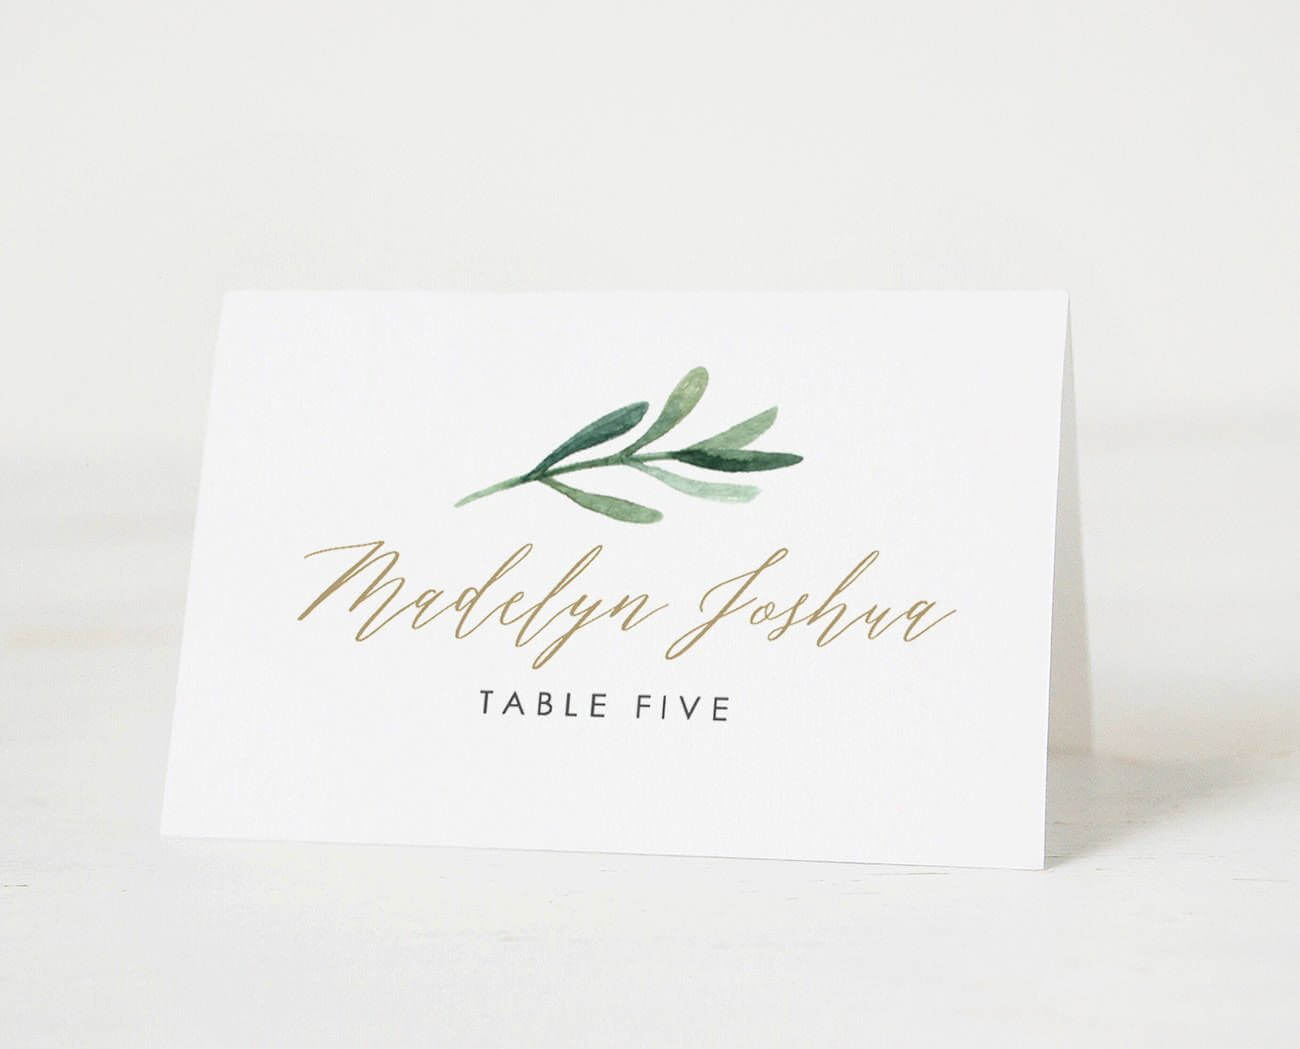 017 Printable Place Cards Template Breathtaking Ideas Word Inside Paper Source Templates Place Cards